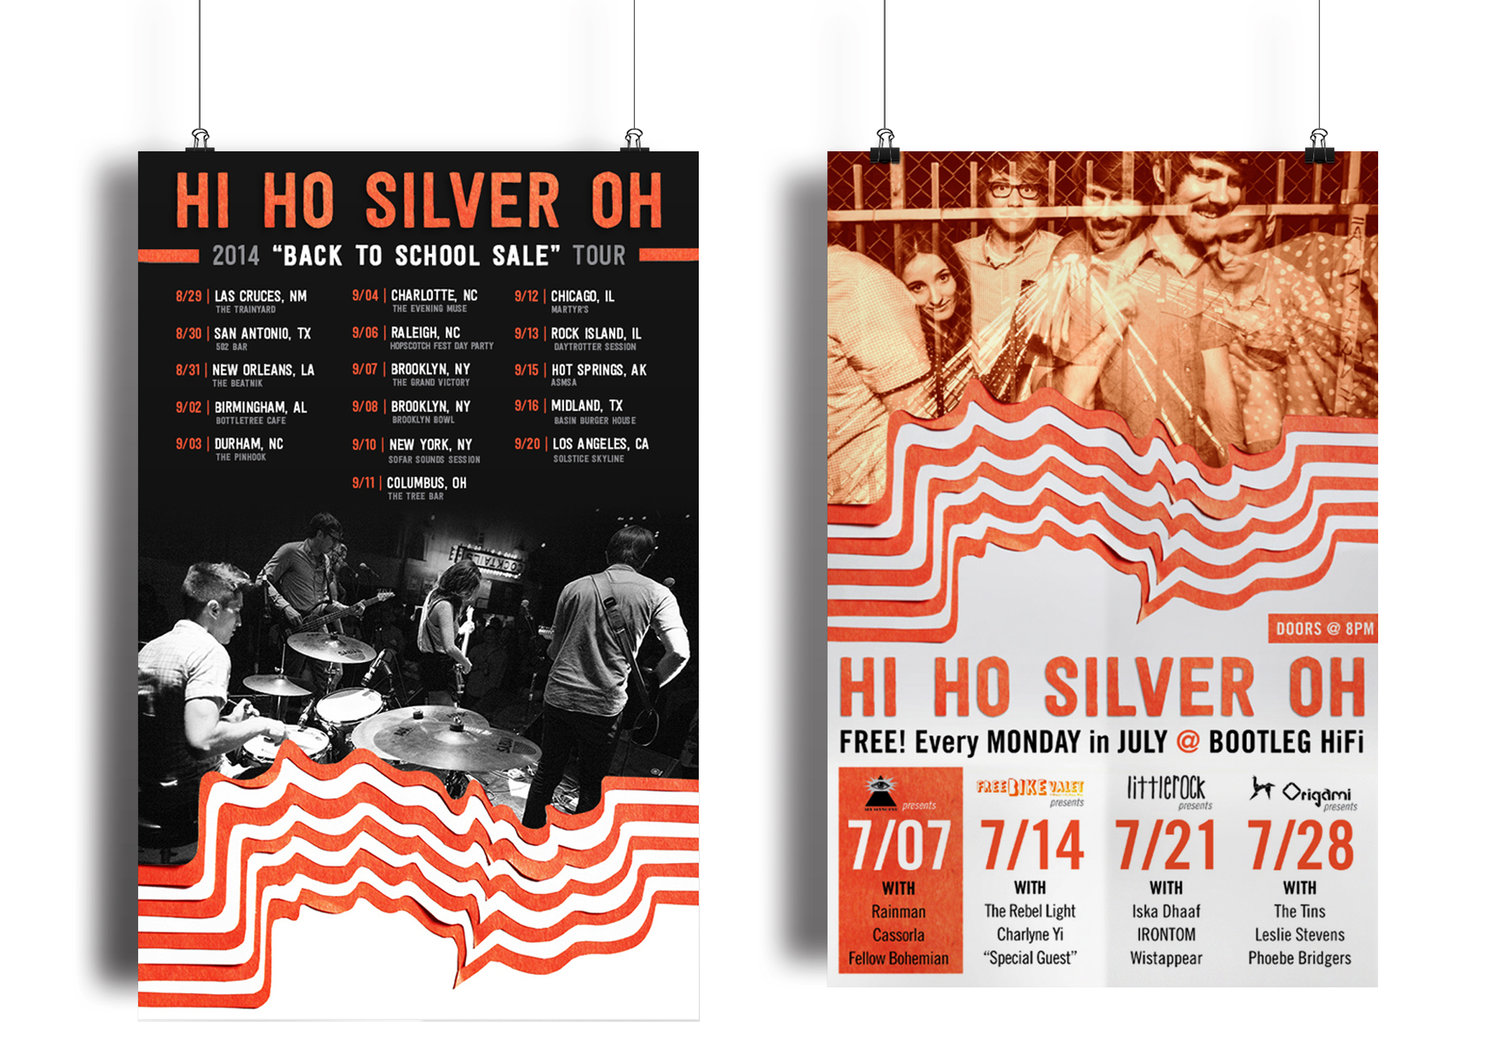 Poster design needed - The Band Needed Web And Print Posters For Tour And Their Residency Shows